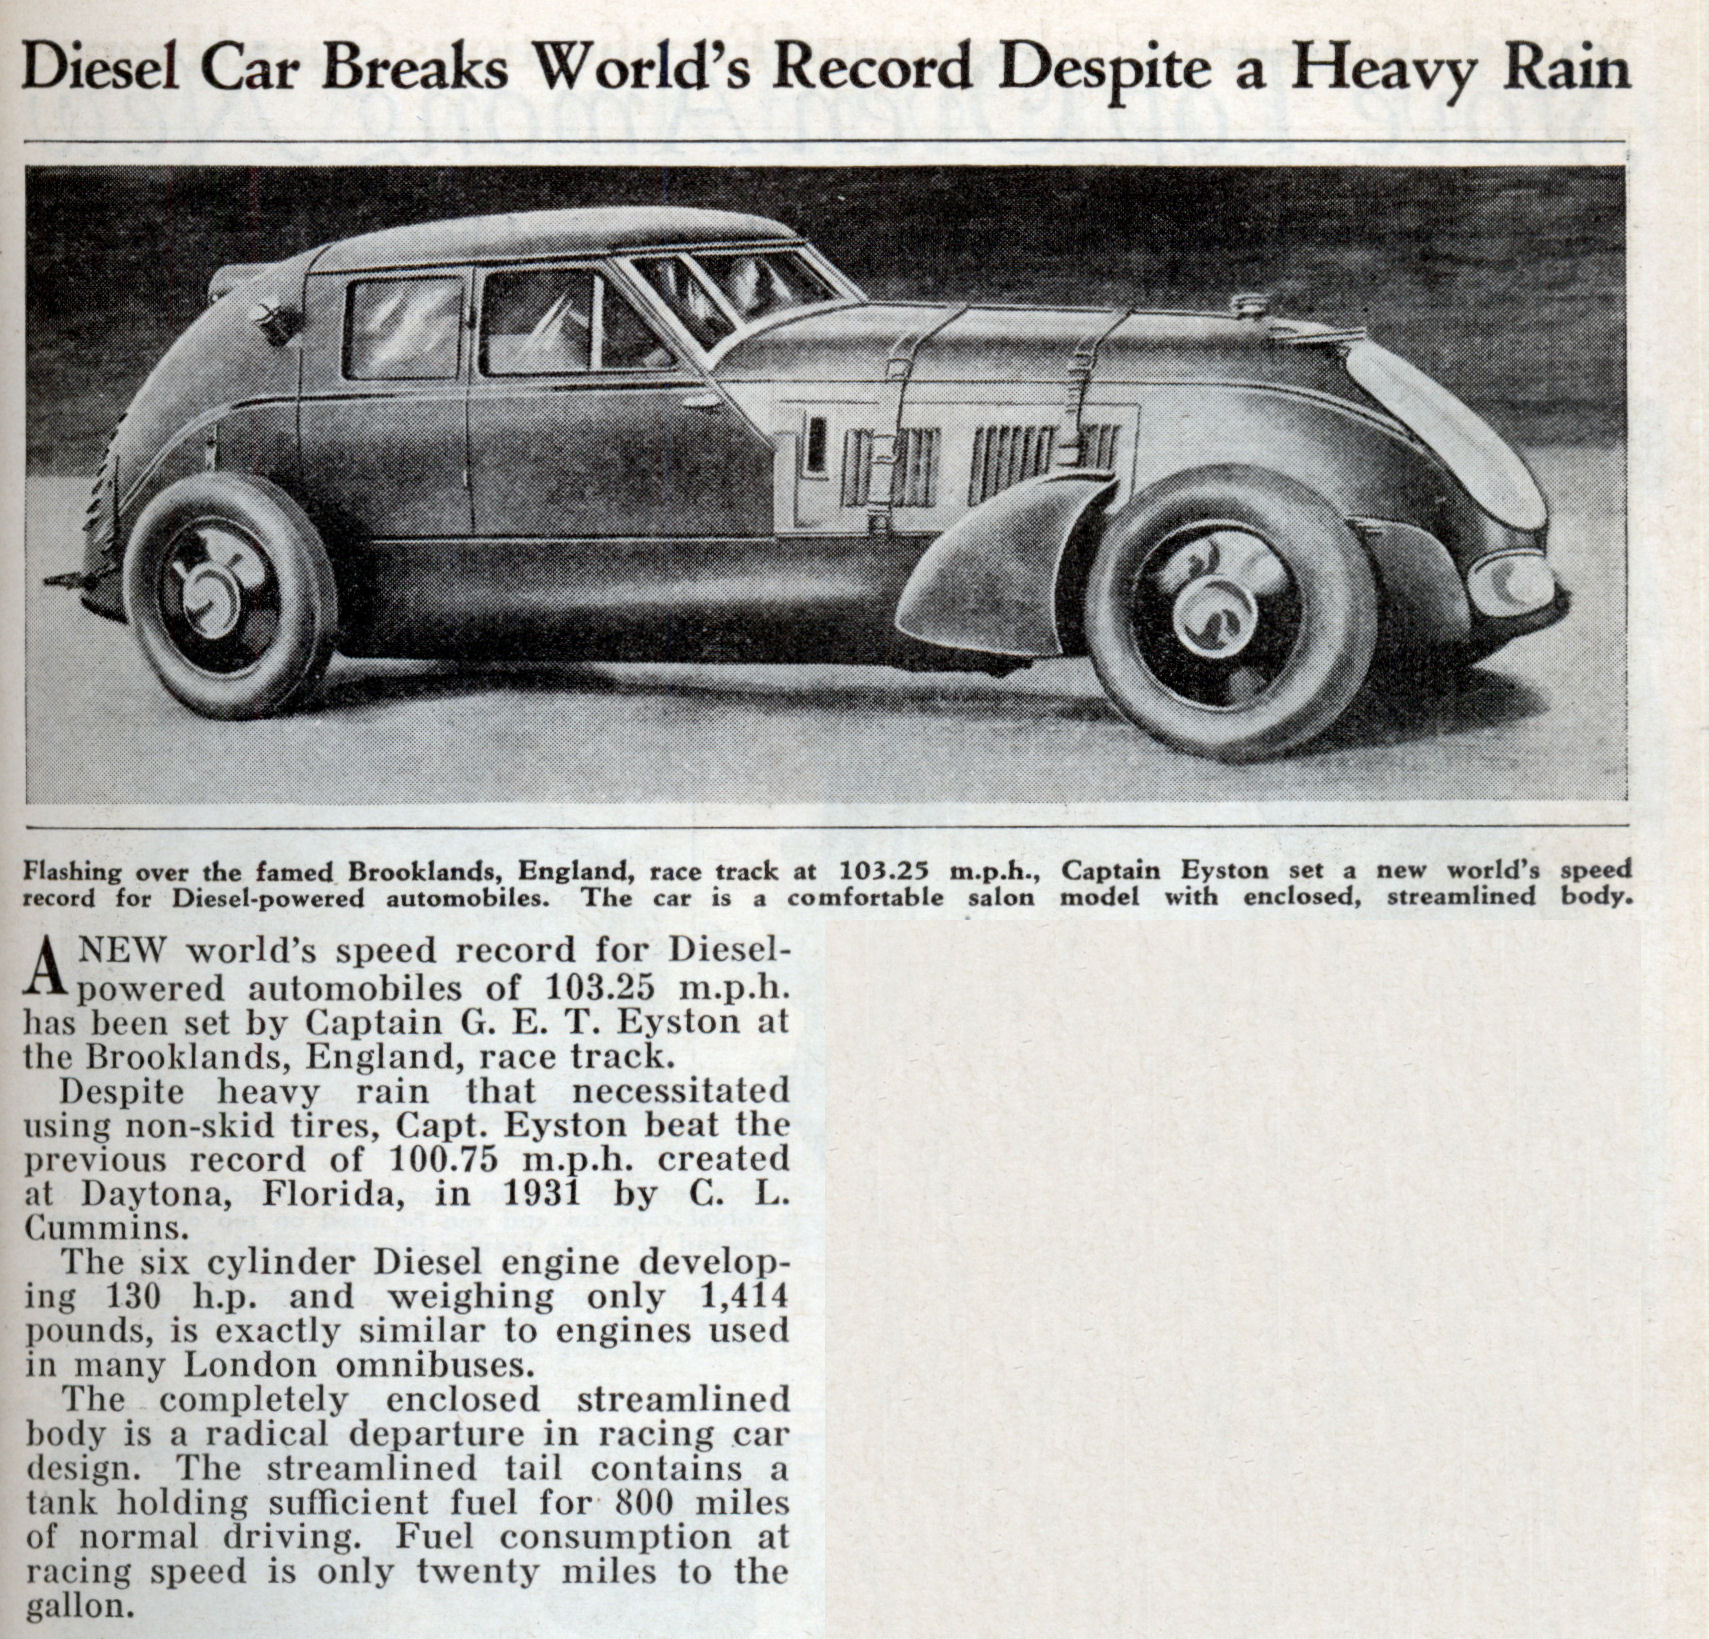 http://blog.modernmechanix.com/mags/ModernMechanix/2-1934/diesel_car.jpg